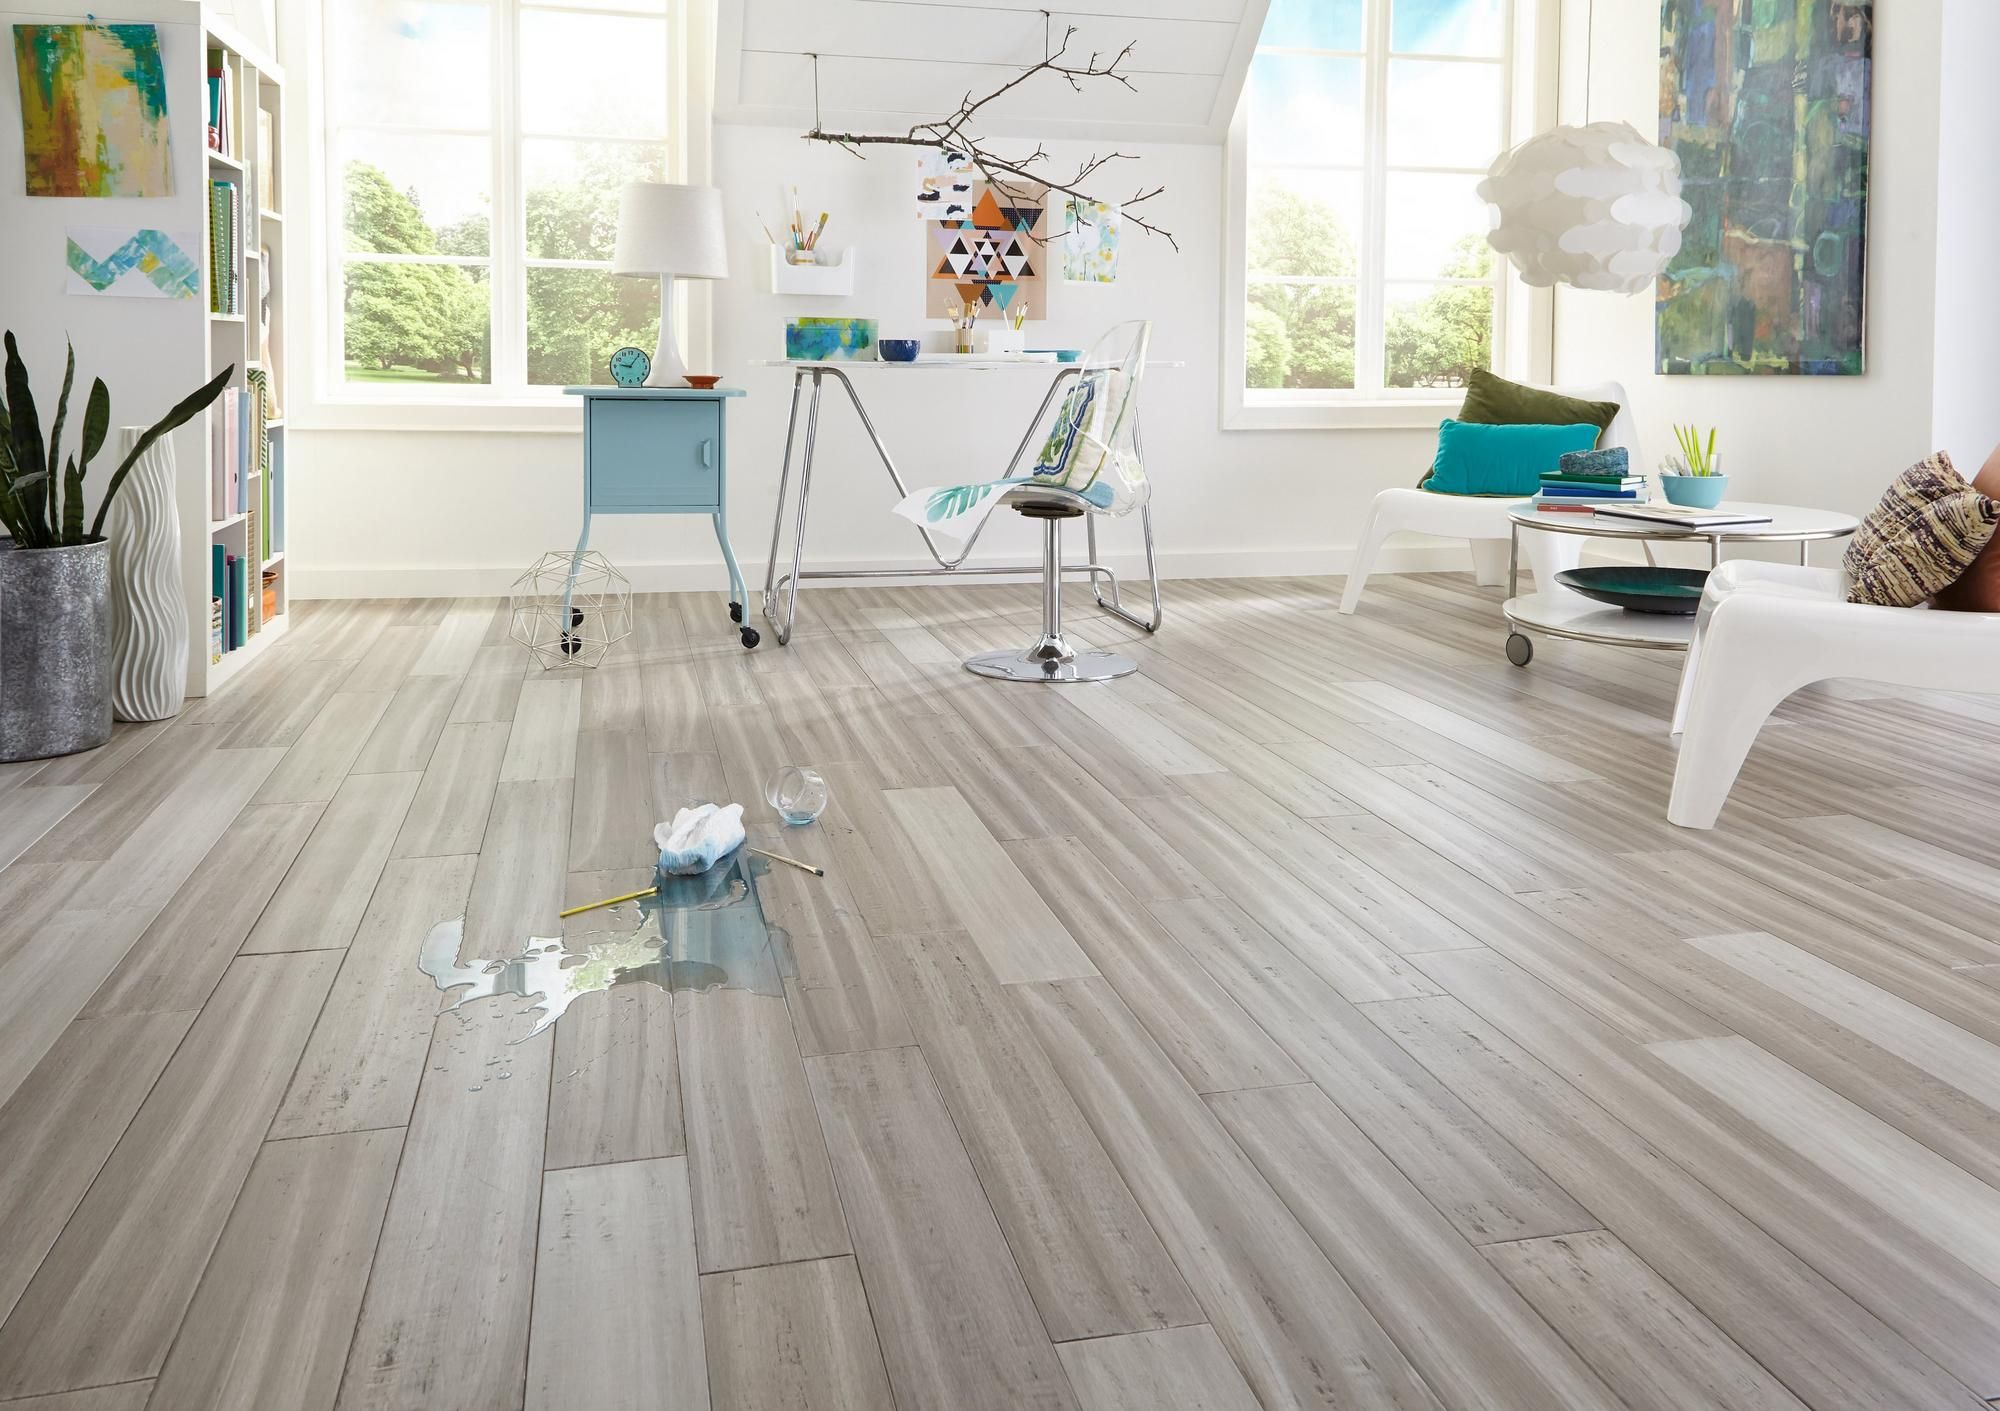 10 Most Popular Types Of Flooring For Living Room